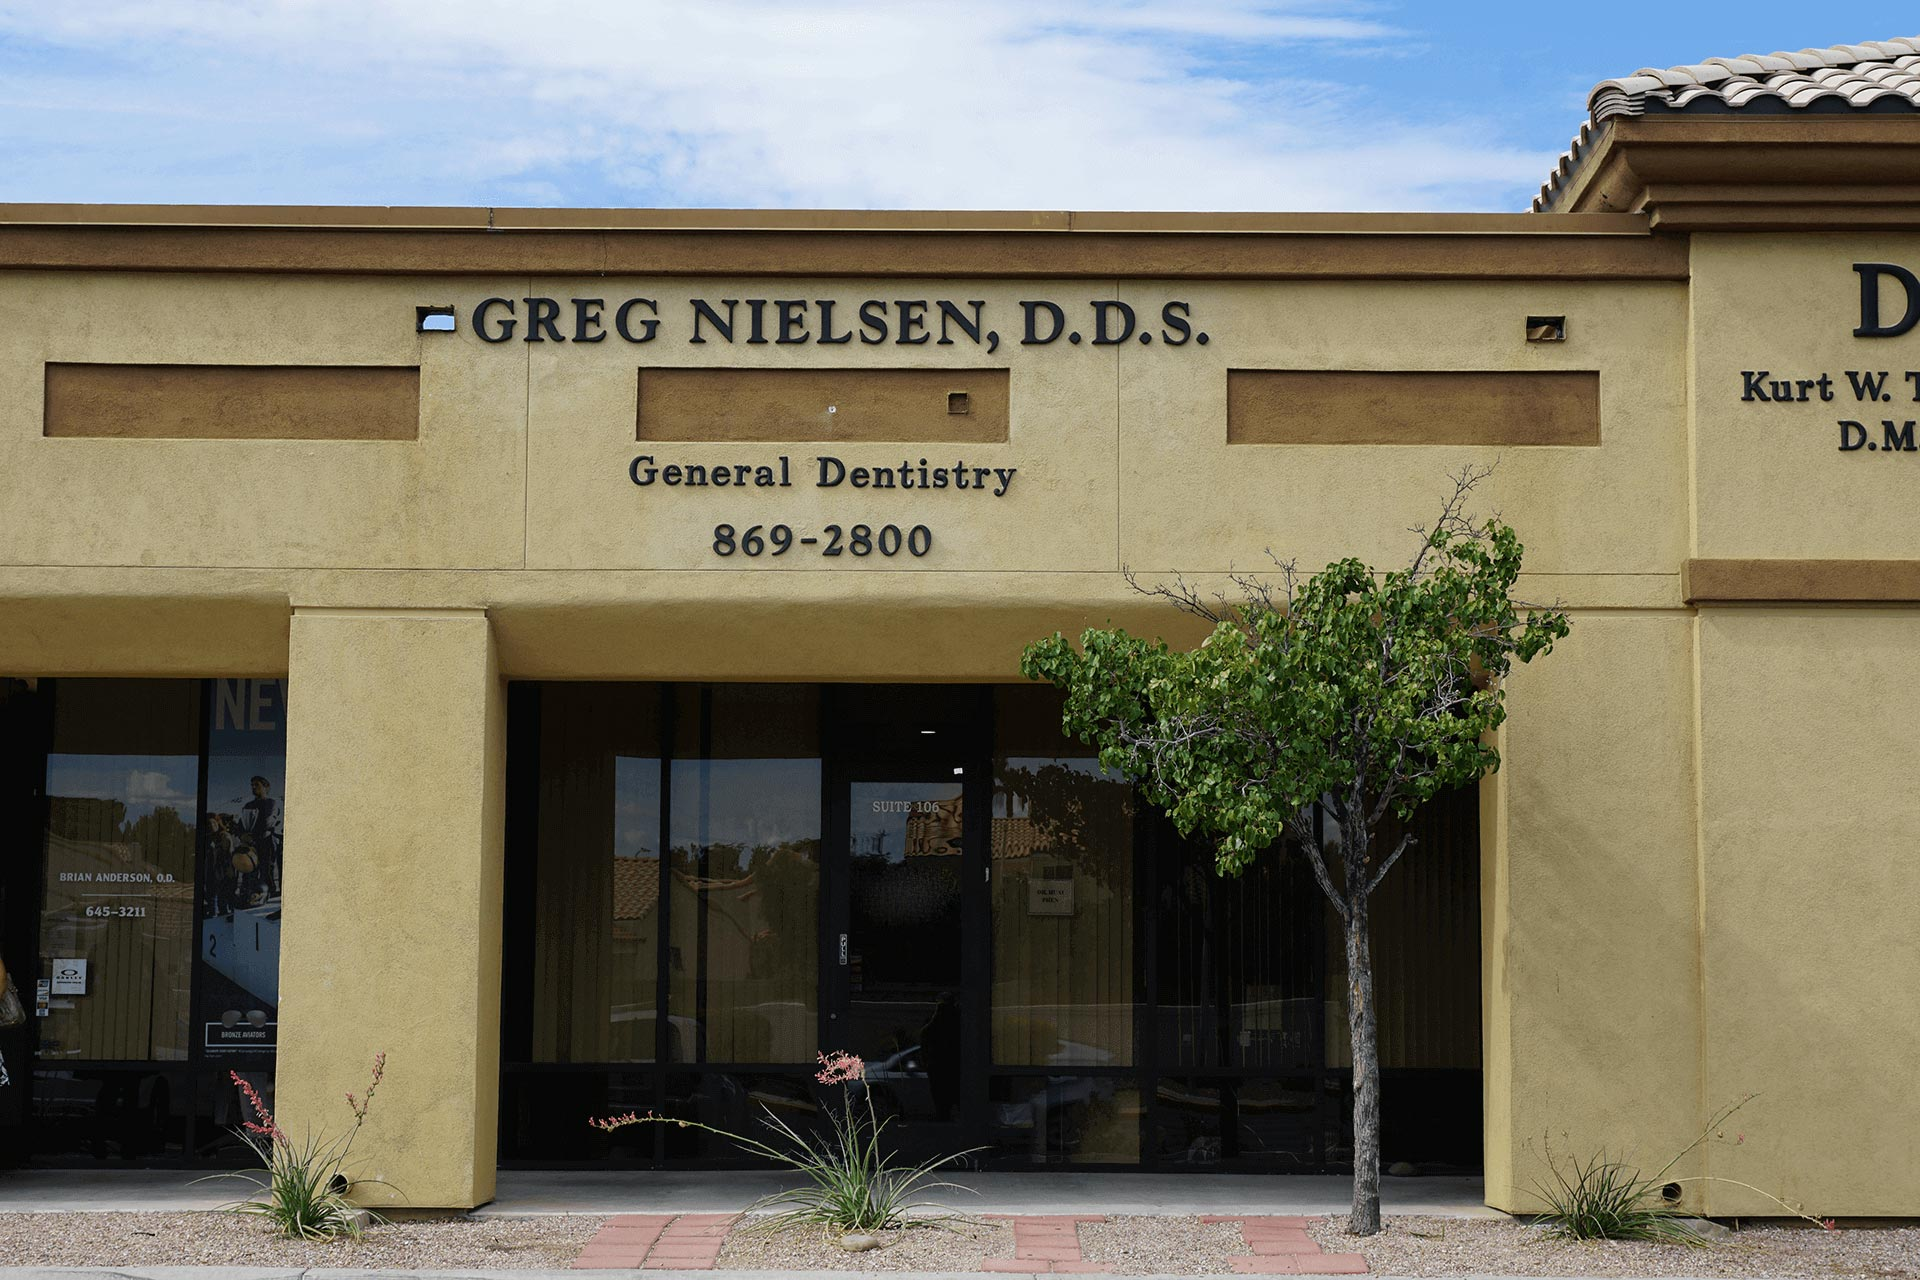 Nielson and Phen Dental's building